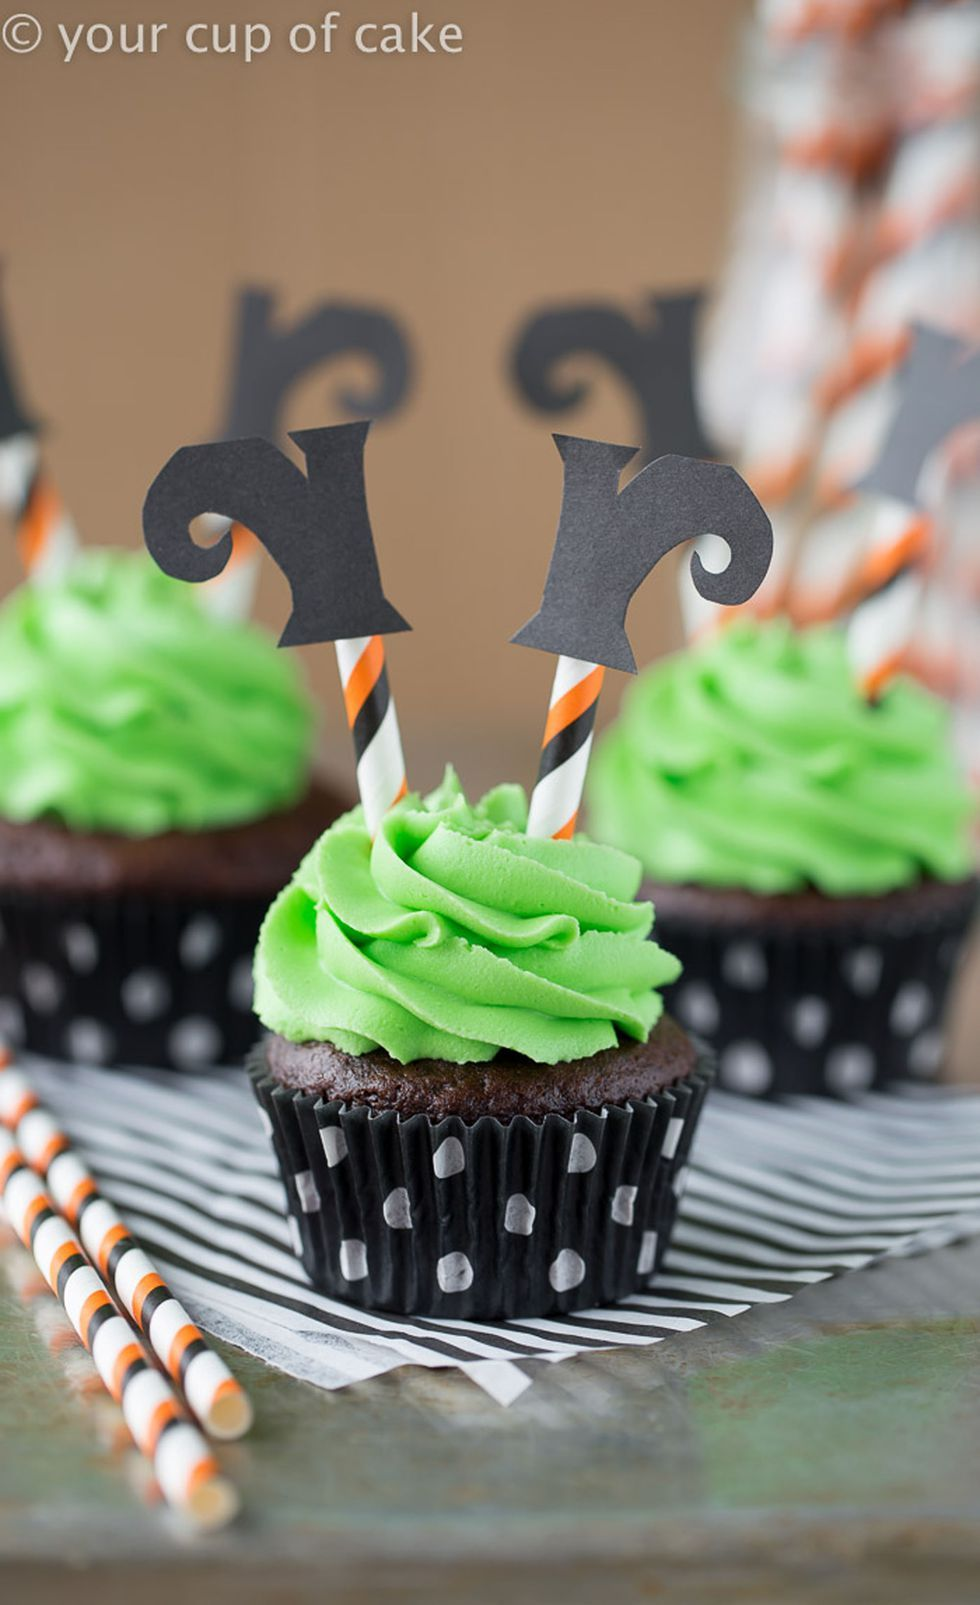 55 Best Halloween Cupcake Ideas for a Scary-Cute Dessert Table #halloweencupcakes